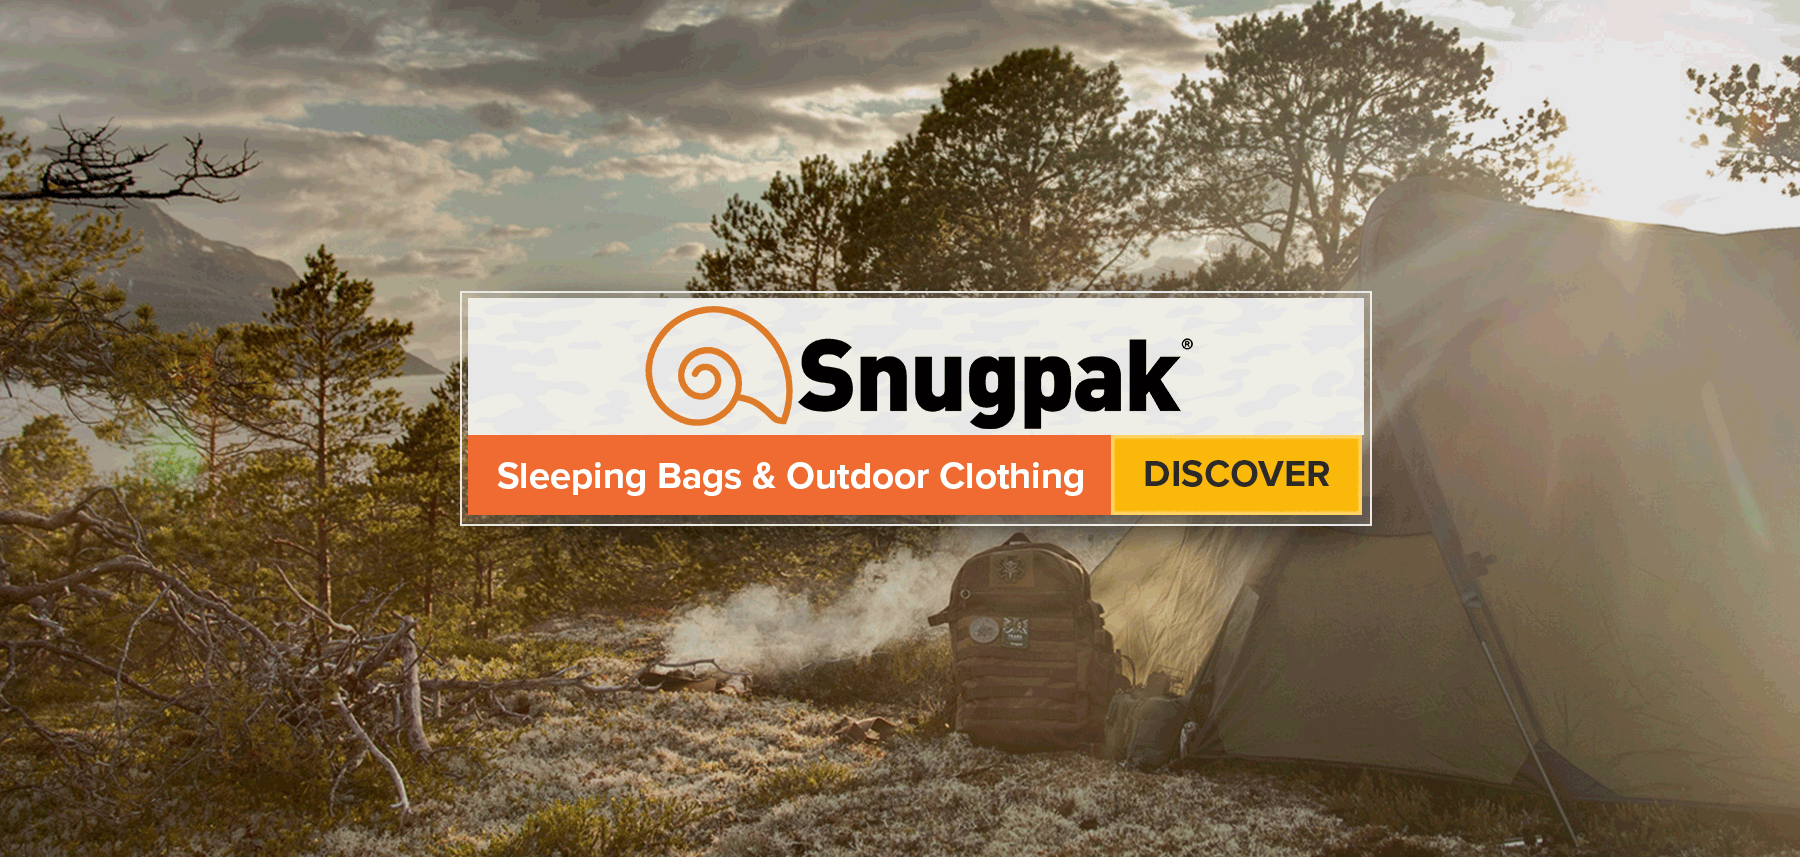 Snugpak Sleeping Bags & Outdoor Clothing | UKMCPro